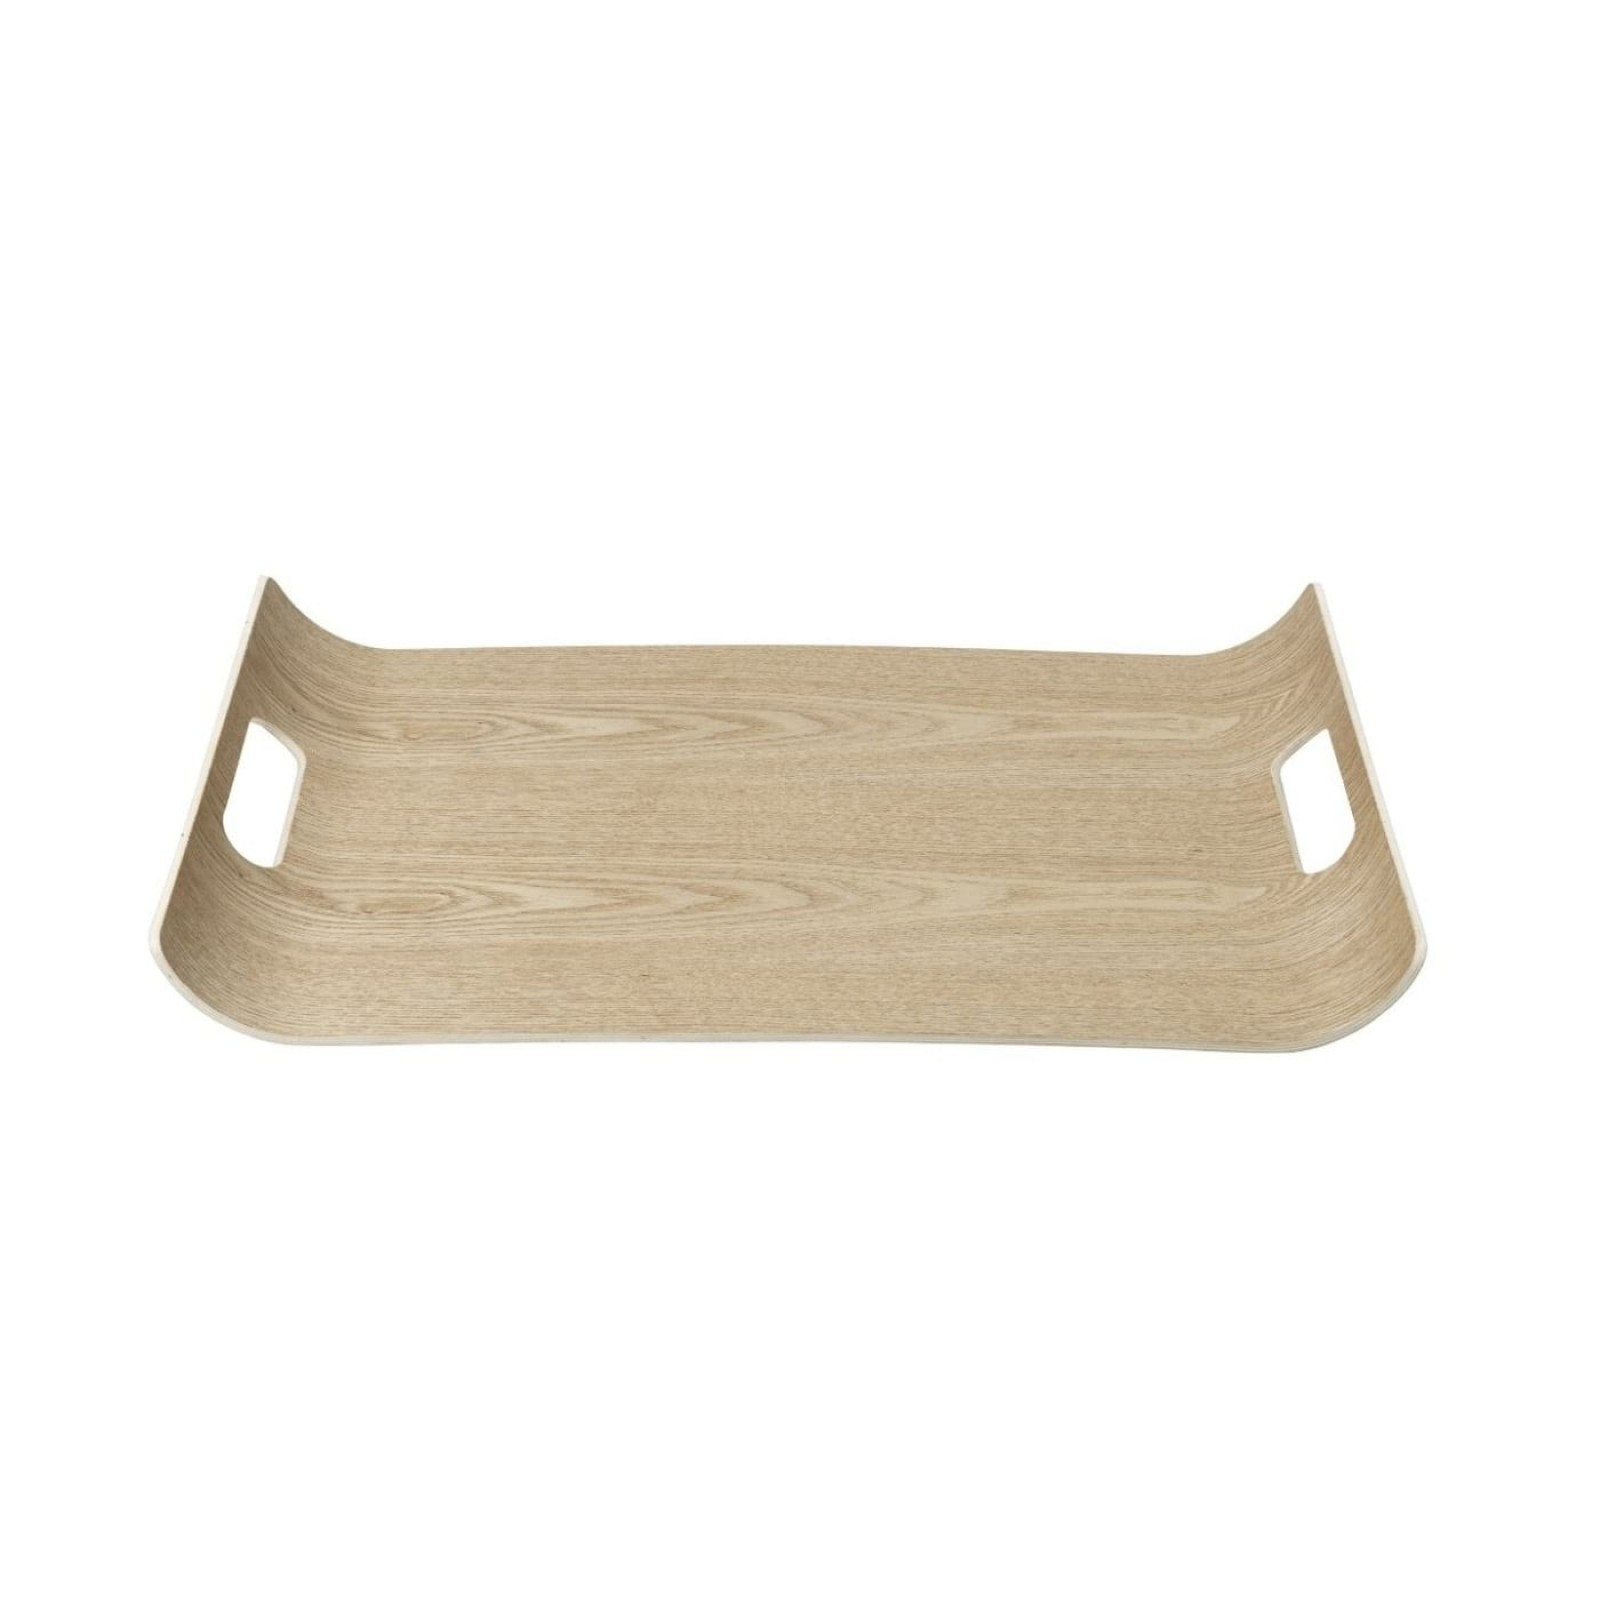 WILO Tray Large (Wood) - Blomus